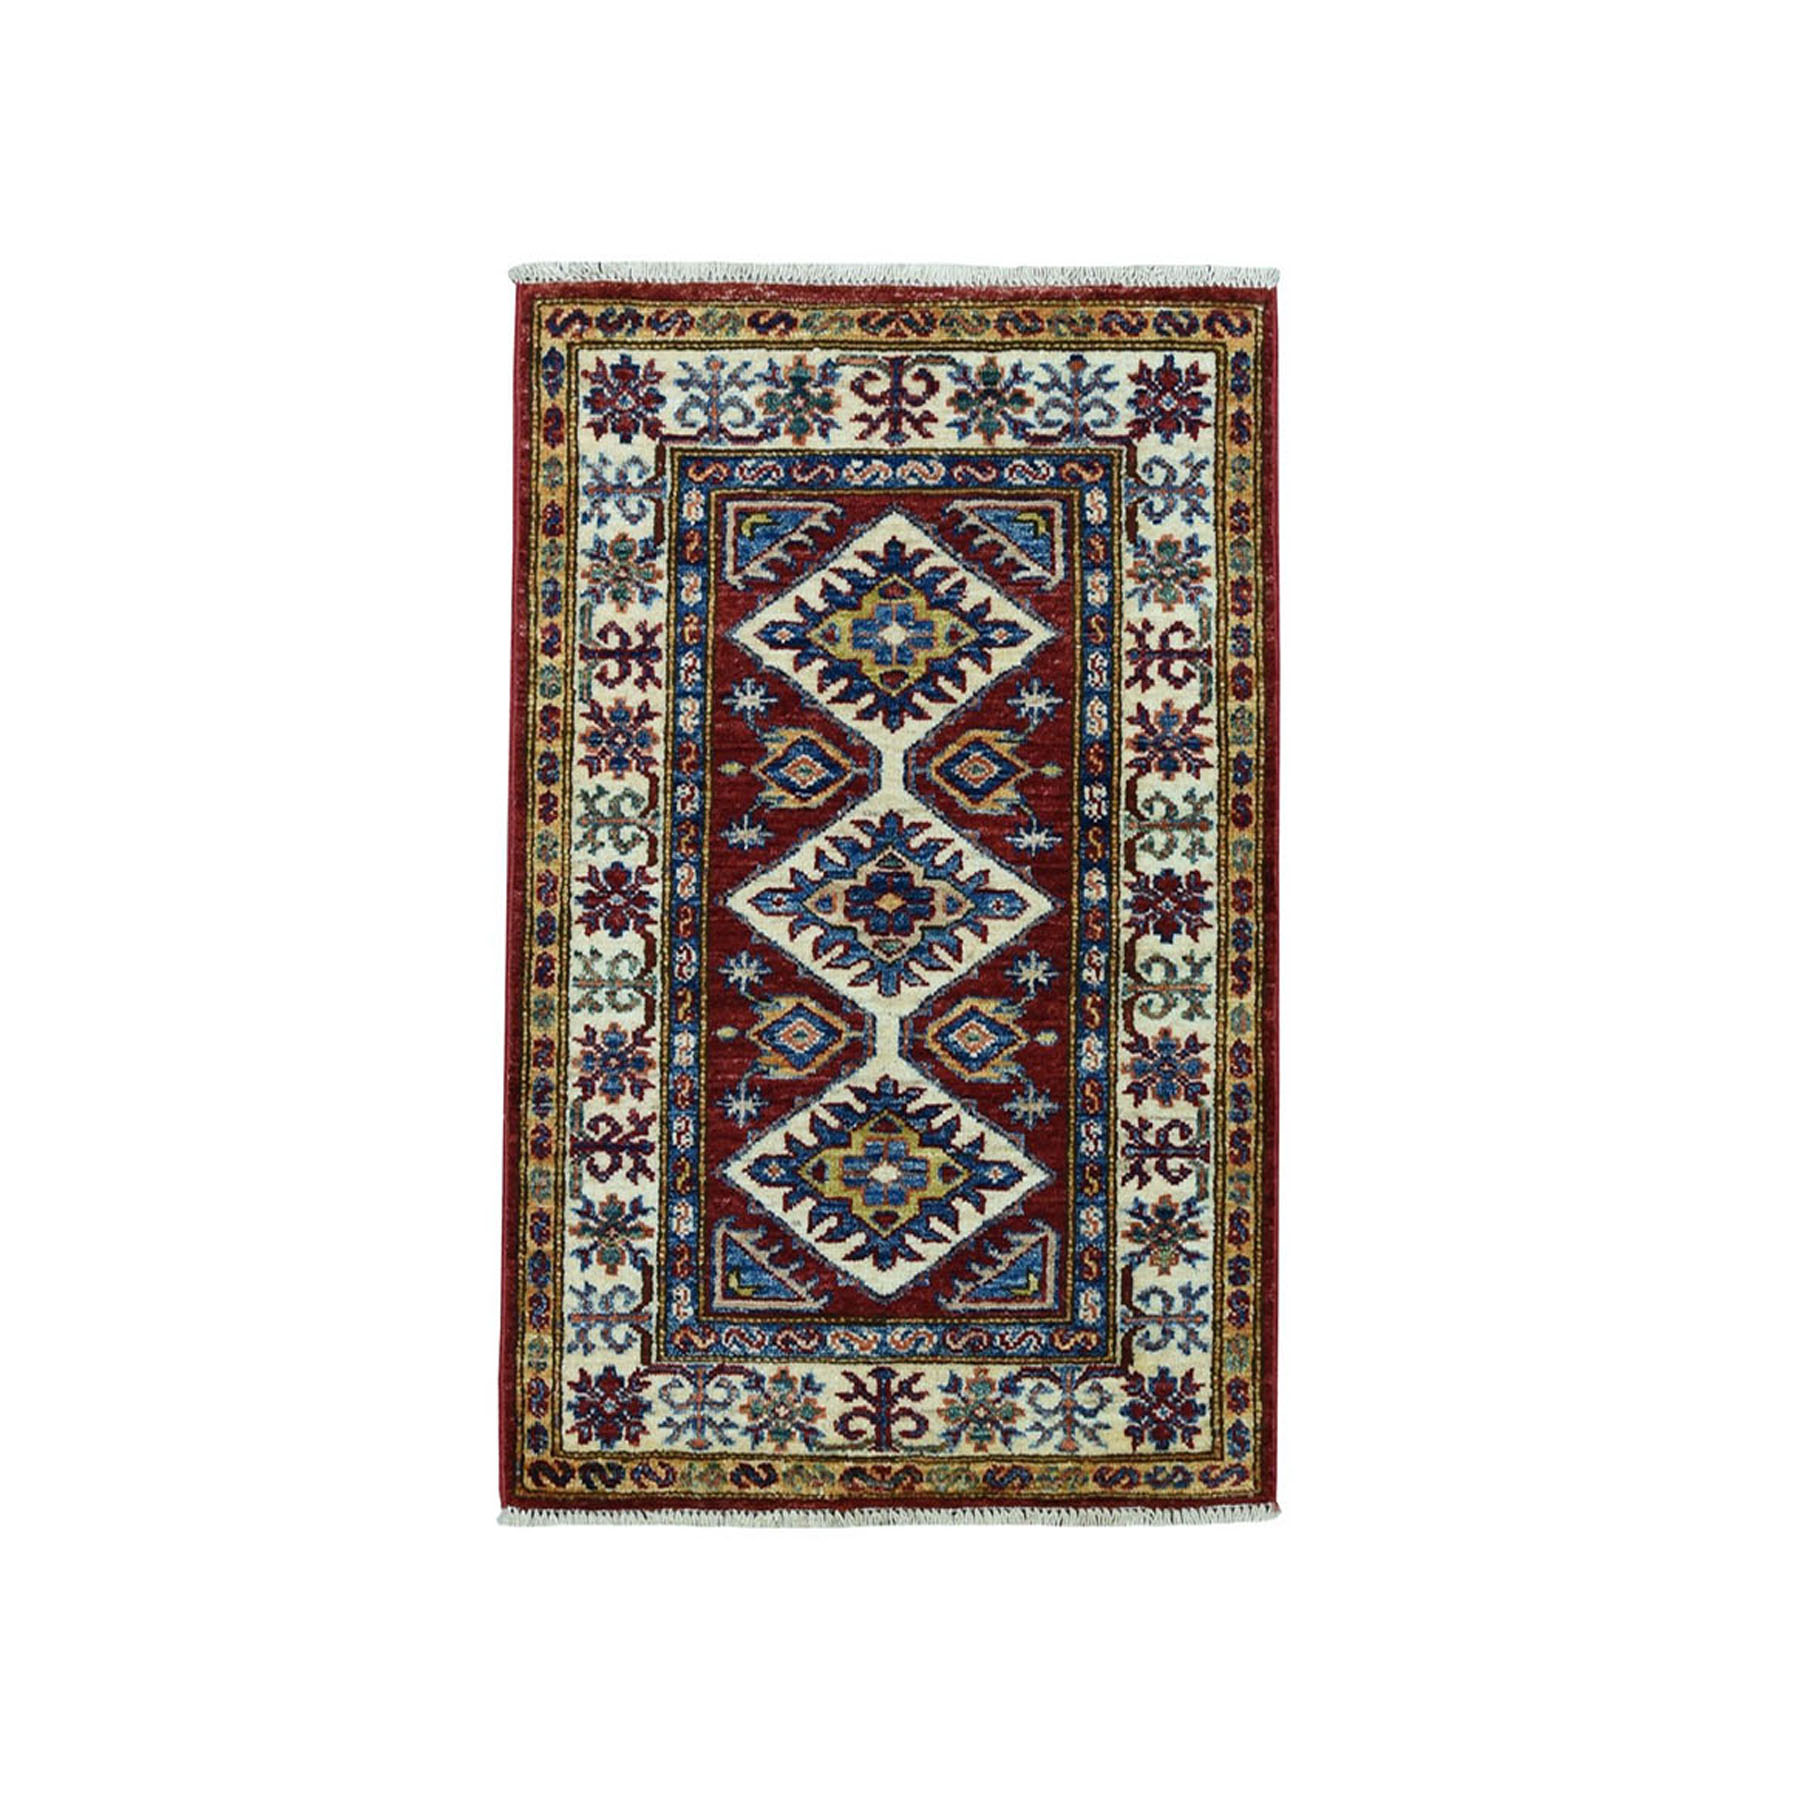 2'X3' Red Super Kazak Pure Wool Geometric Design Hand-Knotted Oriental Rug moae09ee